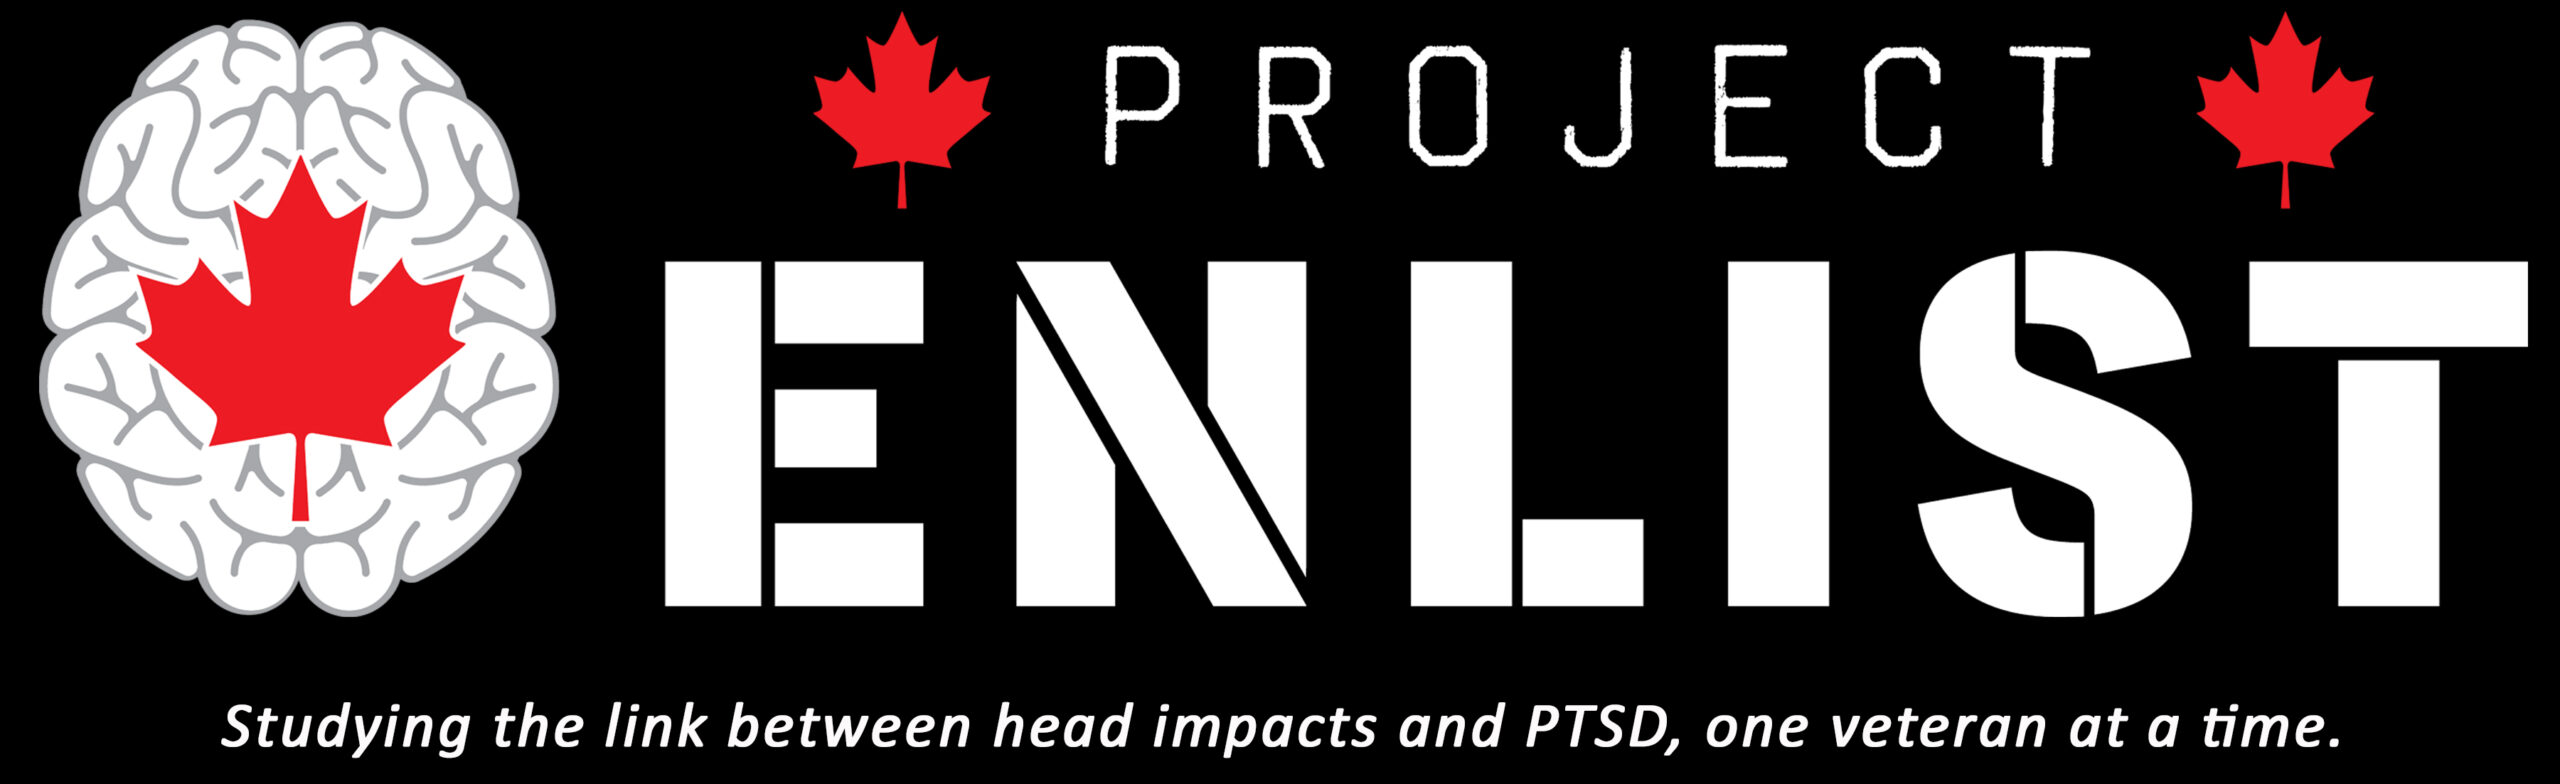 Project Enlist